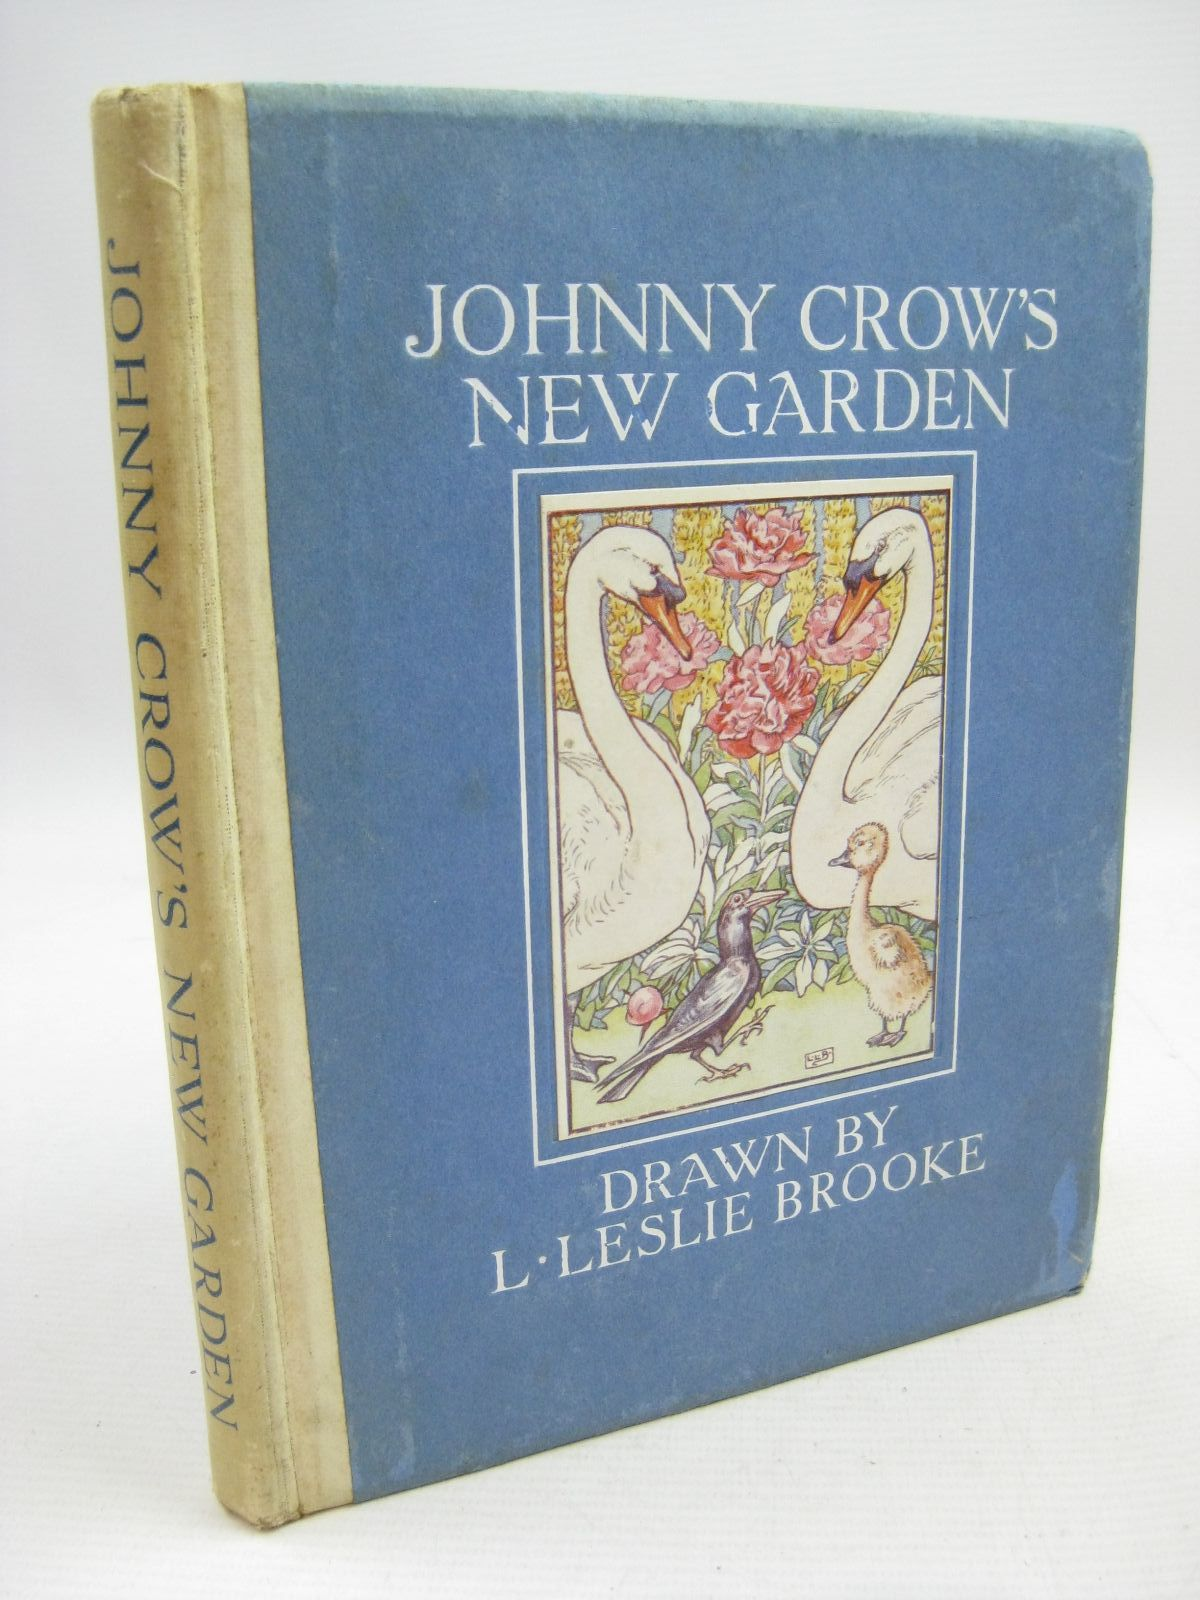 Photo of JOHNNY CROWS NEW GARDEN written by Brooke, L. Leslie illustrated by Brooke, L. Leslie published by Frederick Warne & Co Ltd. (STOCK CODE: 1315517)  for sale by Stella & Rose's Books